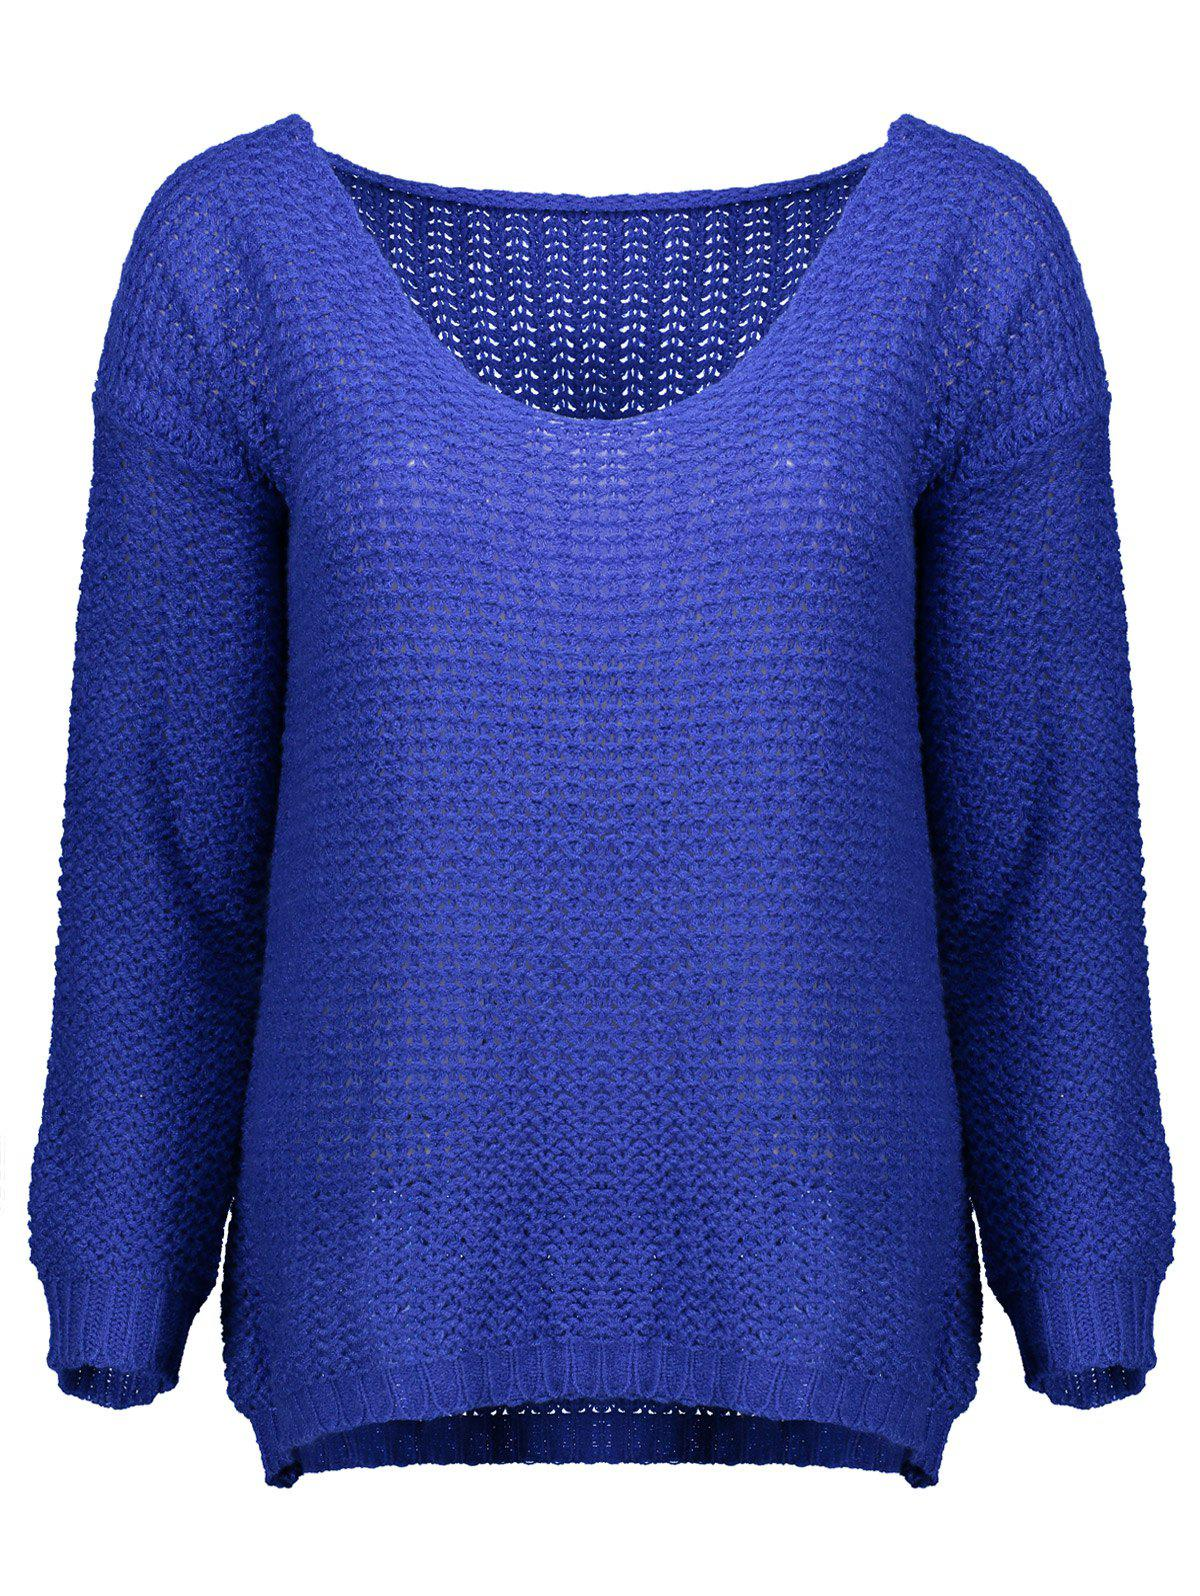 Open Knit Scoop Neck Sweater inc international concepts new olive open knit sweater msrp $89 5 dbfl